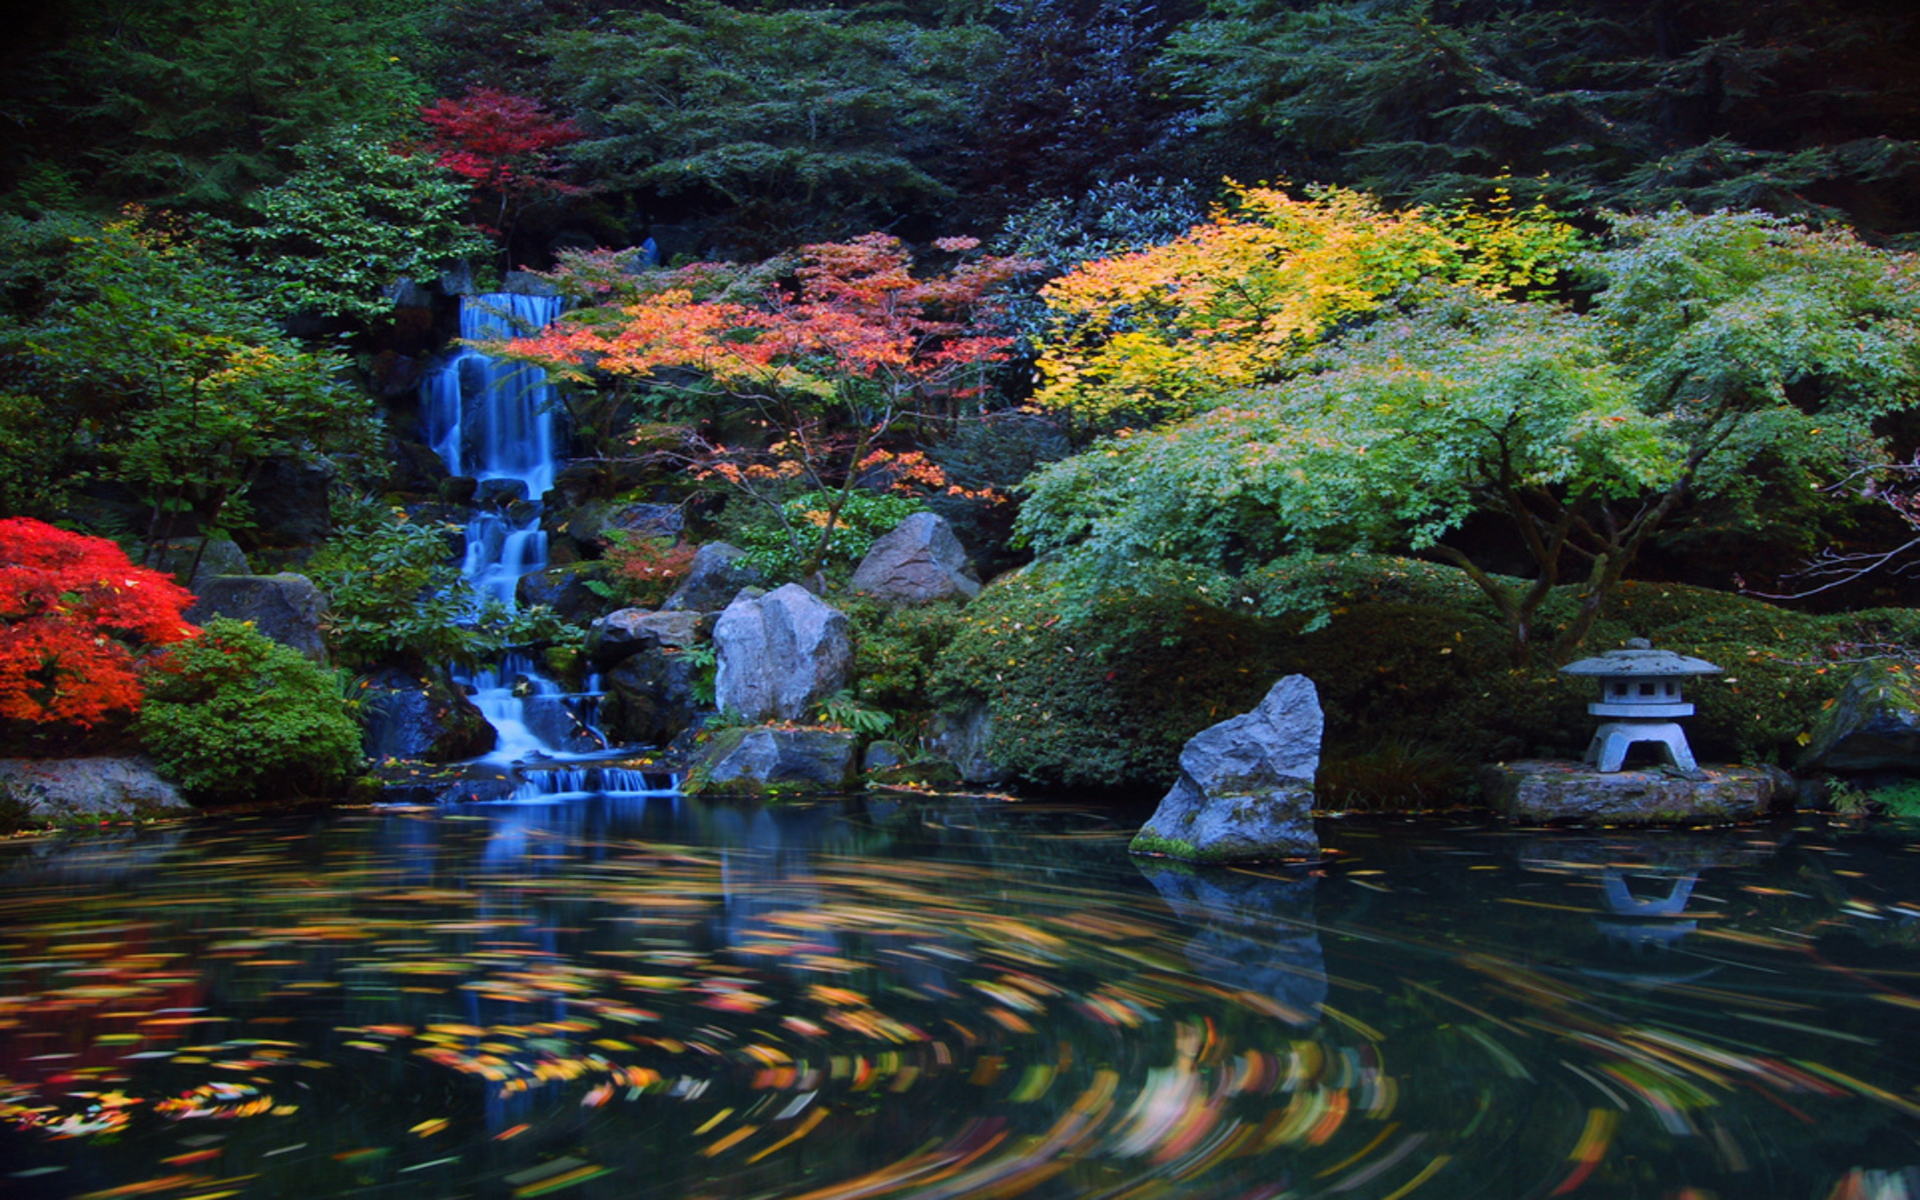 japanese garden hd wallpaper wallpapersafari